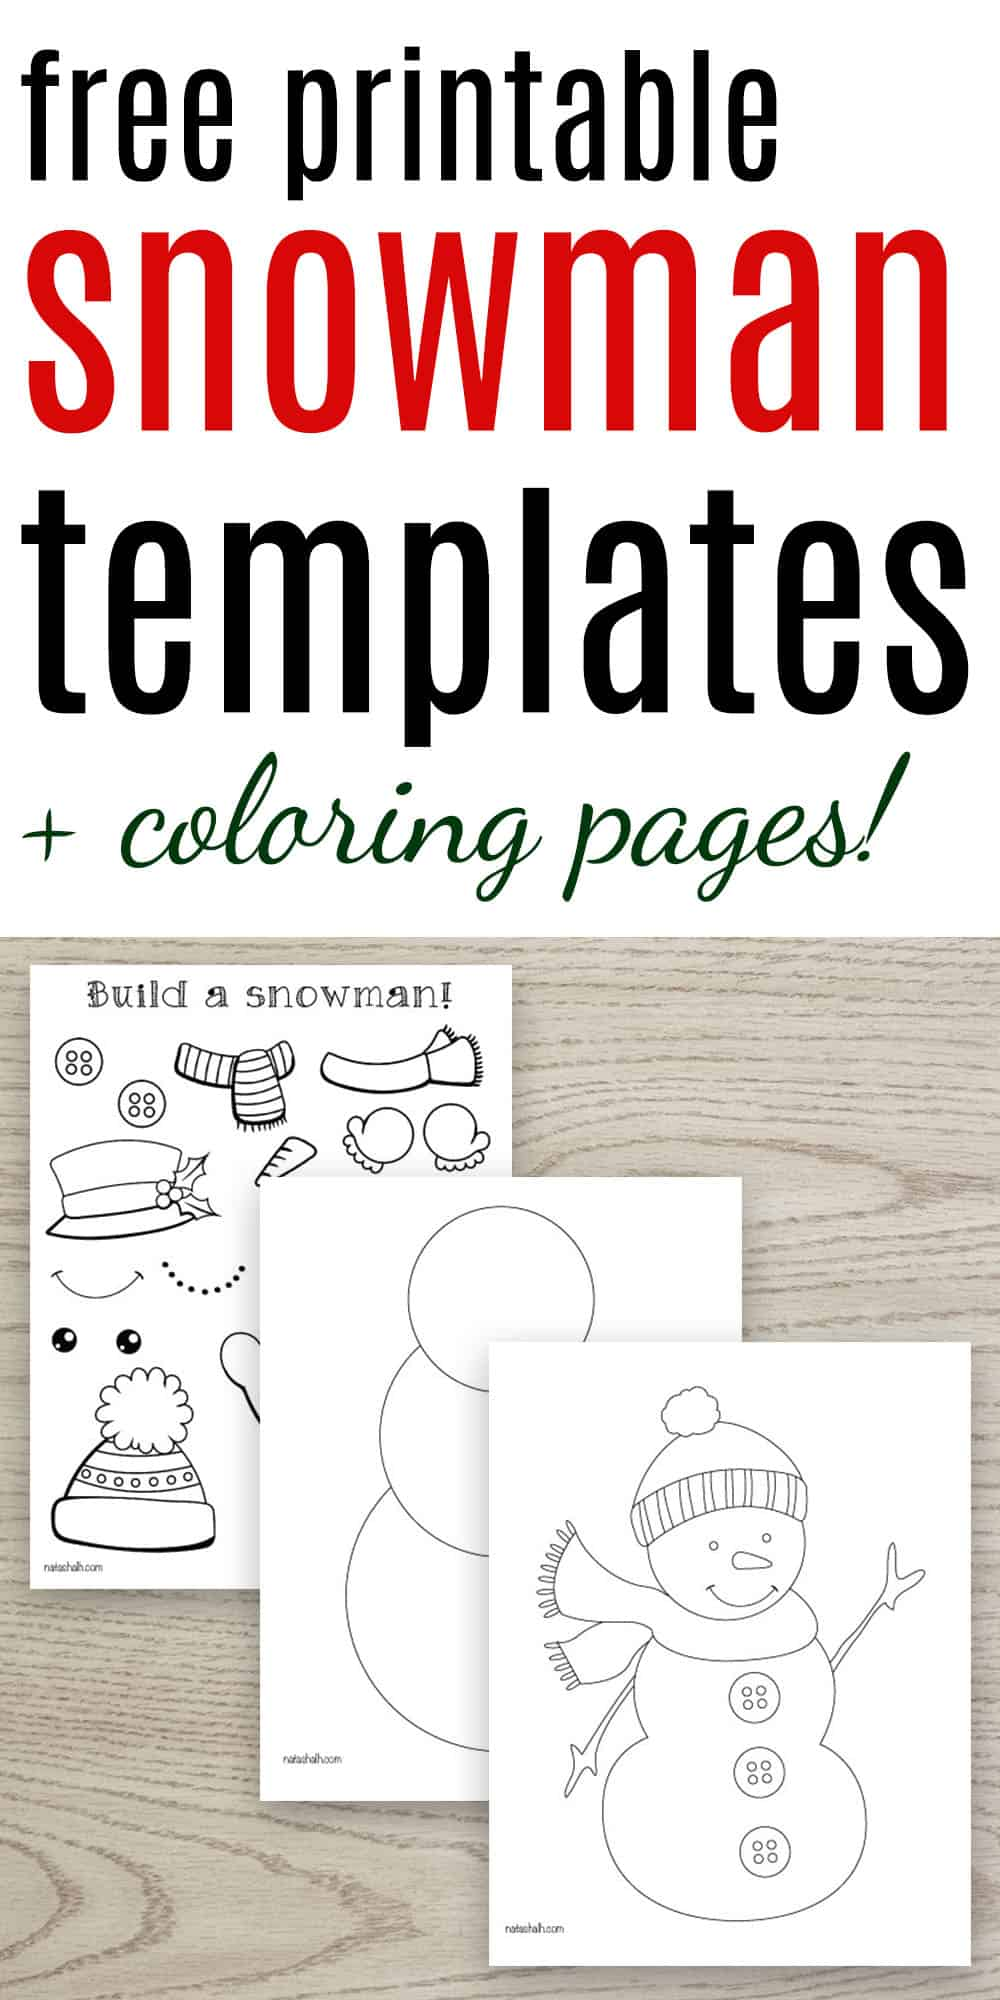 Free Printable Snowman Templates The Artisan Life